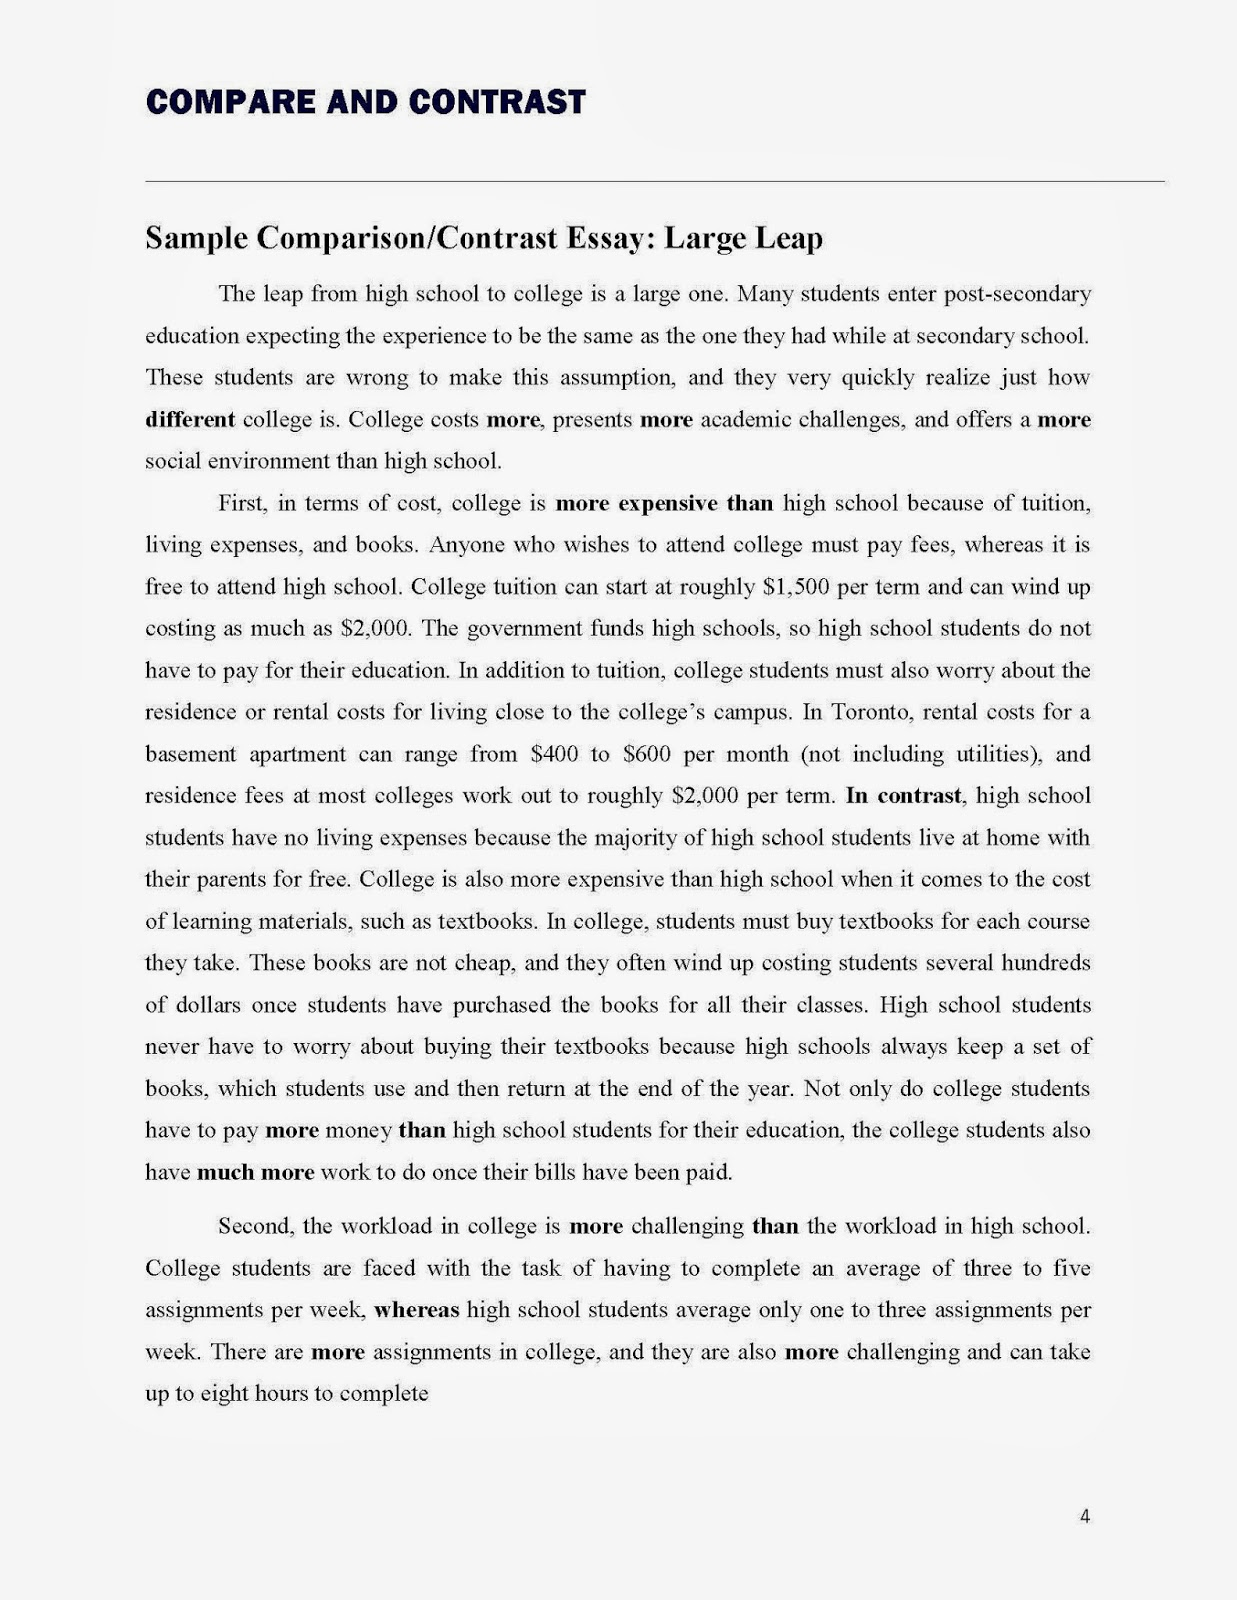 comparison essays best compare and contrast essay hamlet essays  also compare contrast essay prompts compare contrast essay writing compare and contrastessay prompt liao ipnodns rucompare